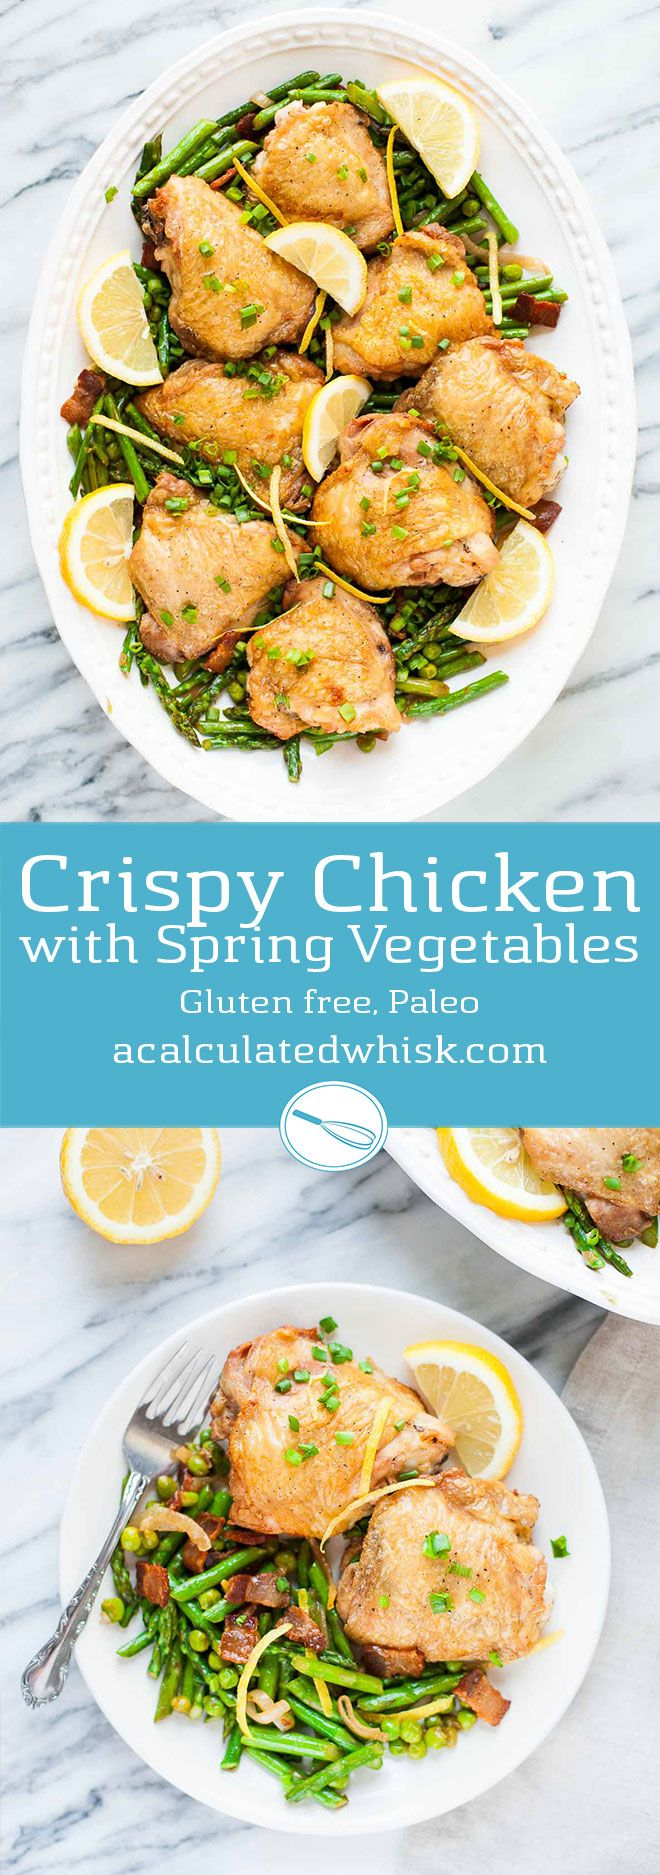 95 best paleo grain free chicken poultry recipes images on crispy chicken with spring vegetables gluten free paleo paleo chicken recipespaleo recipesreal food forumfinder Image collections